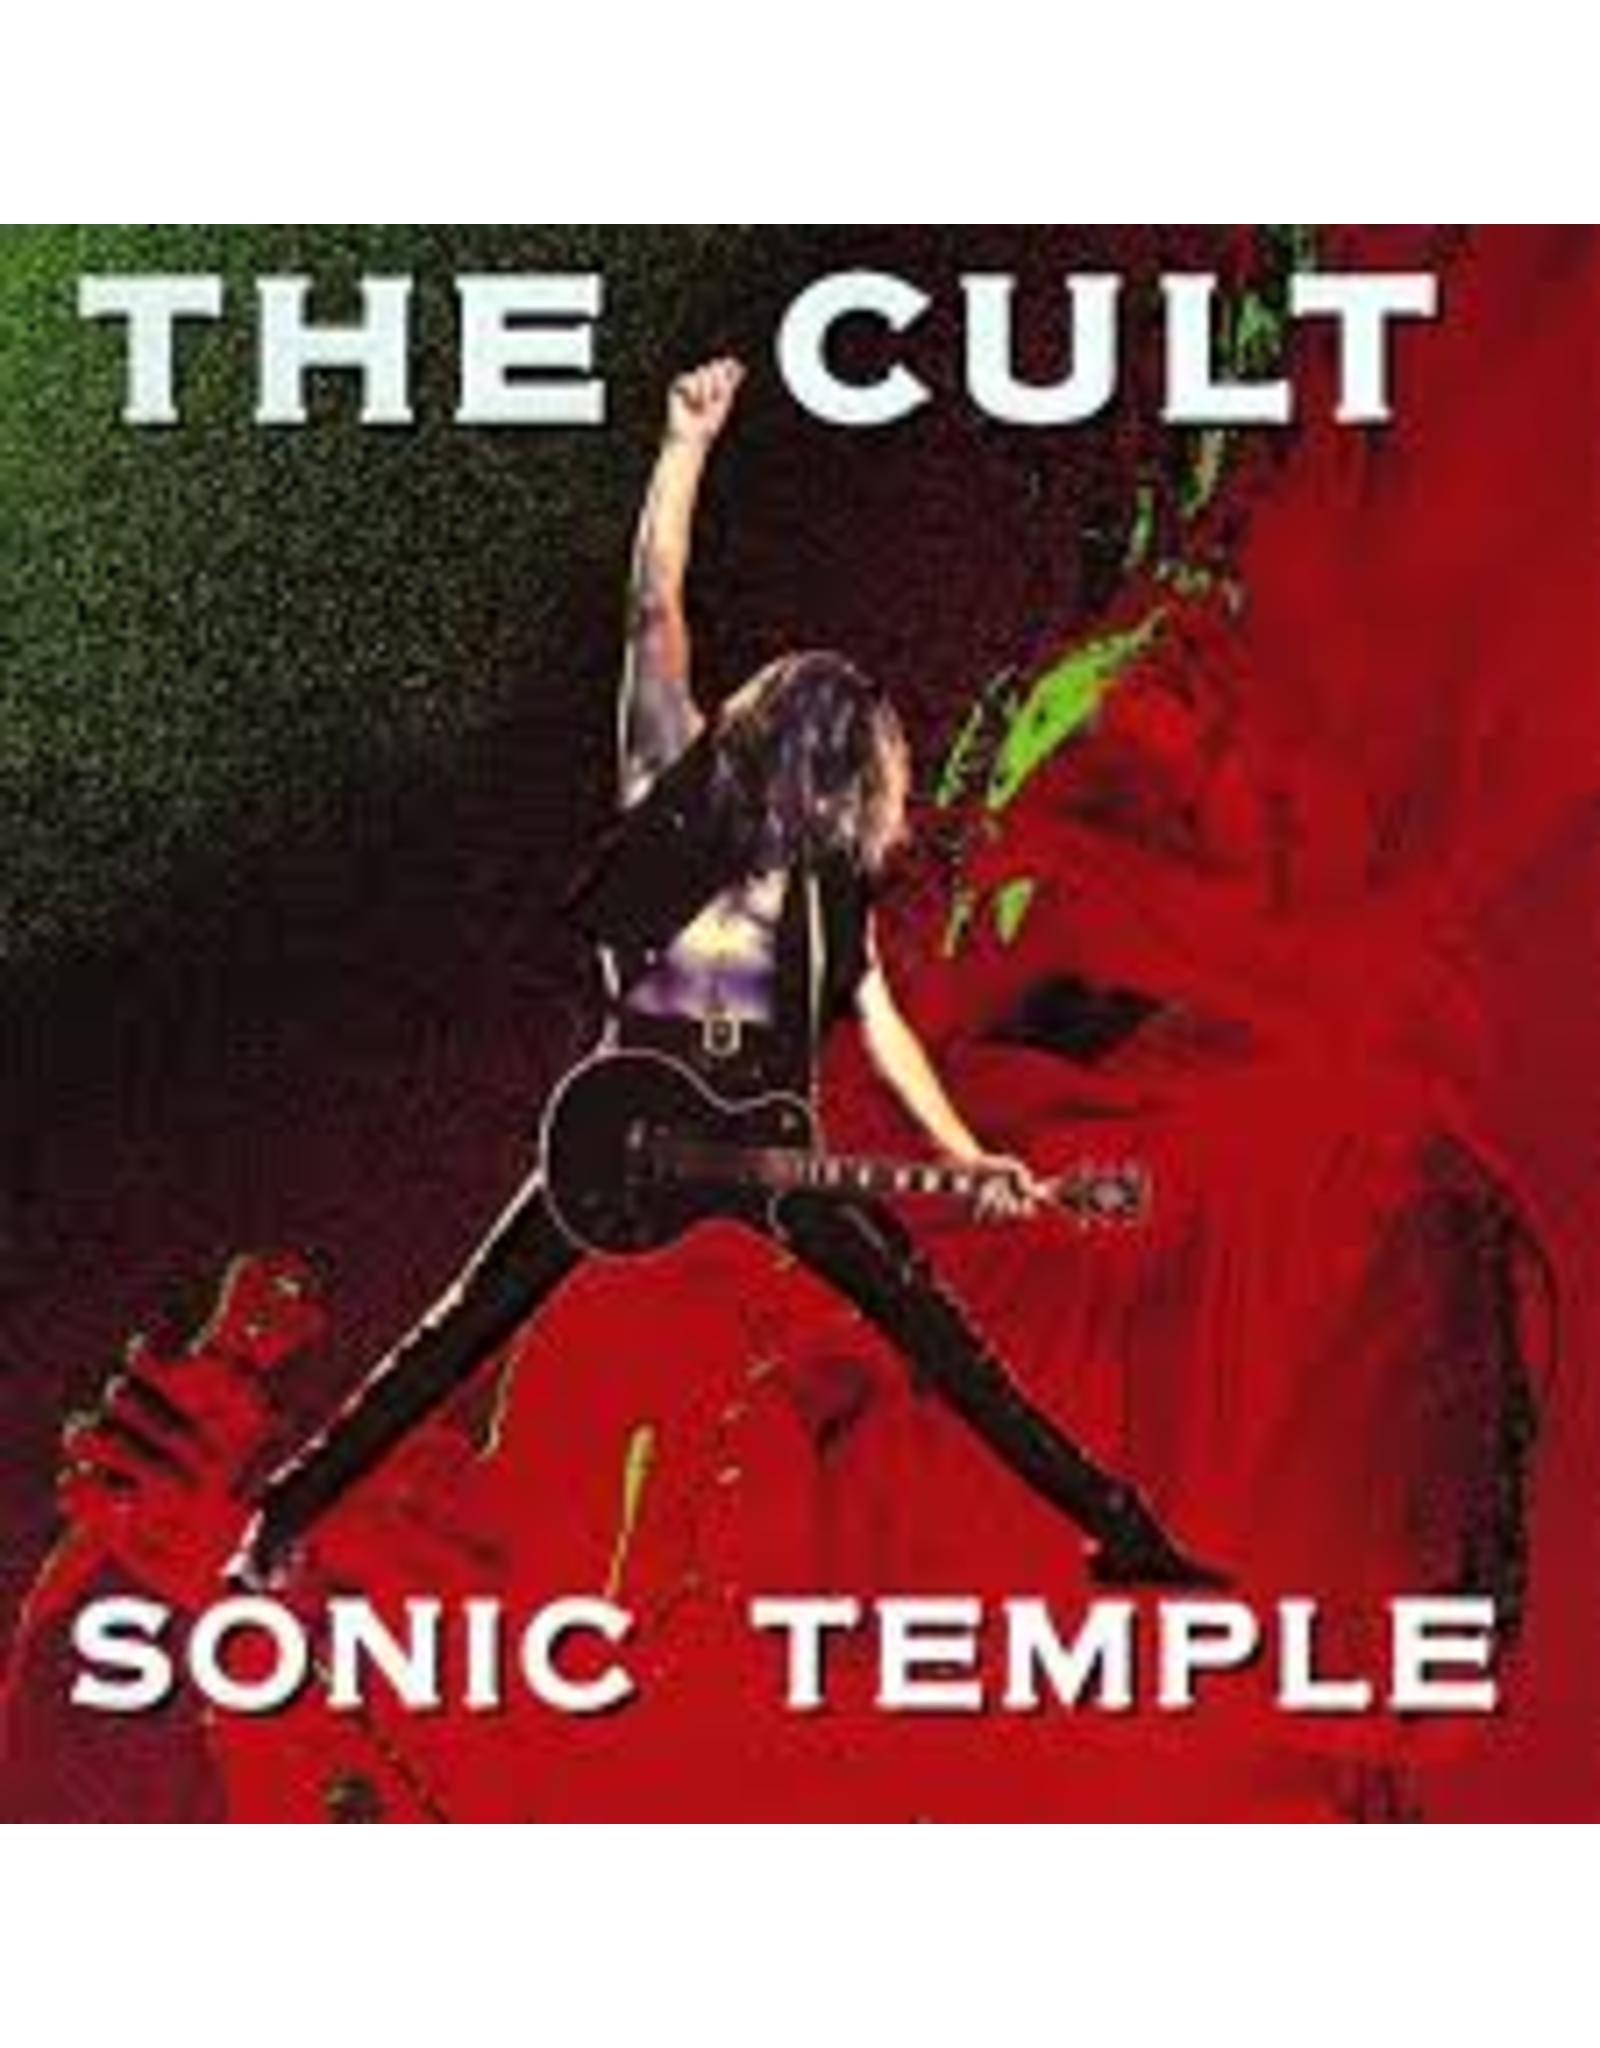 Cult - Sonic Temple (30th Anniversary)